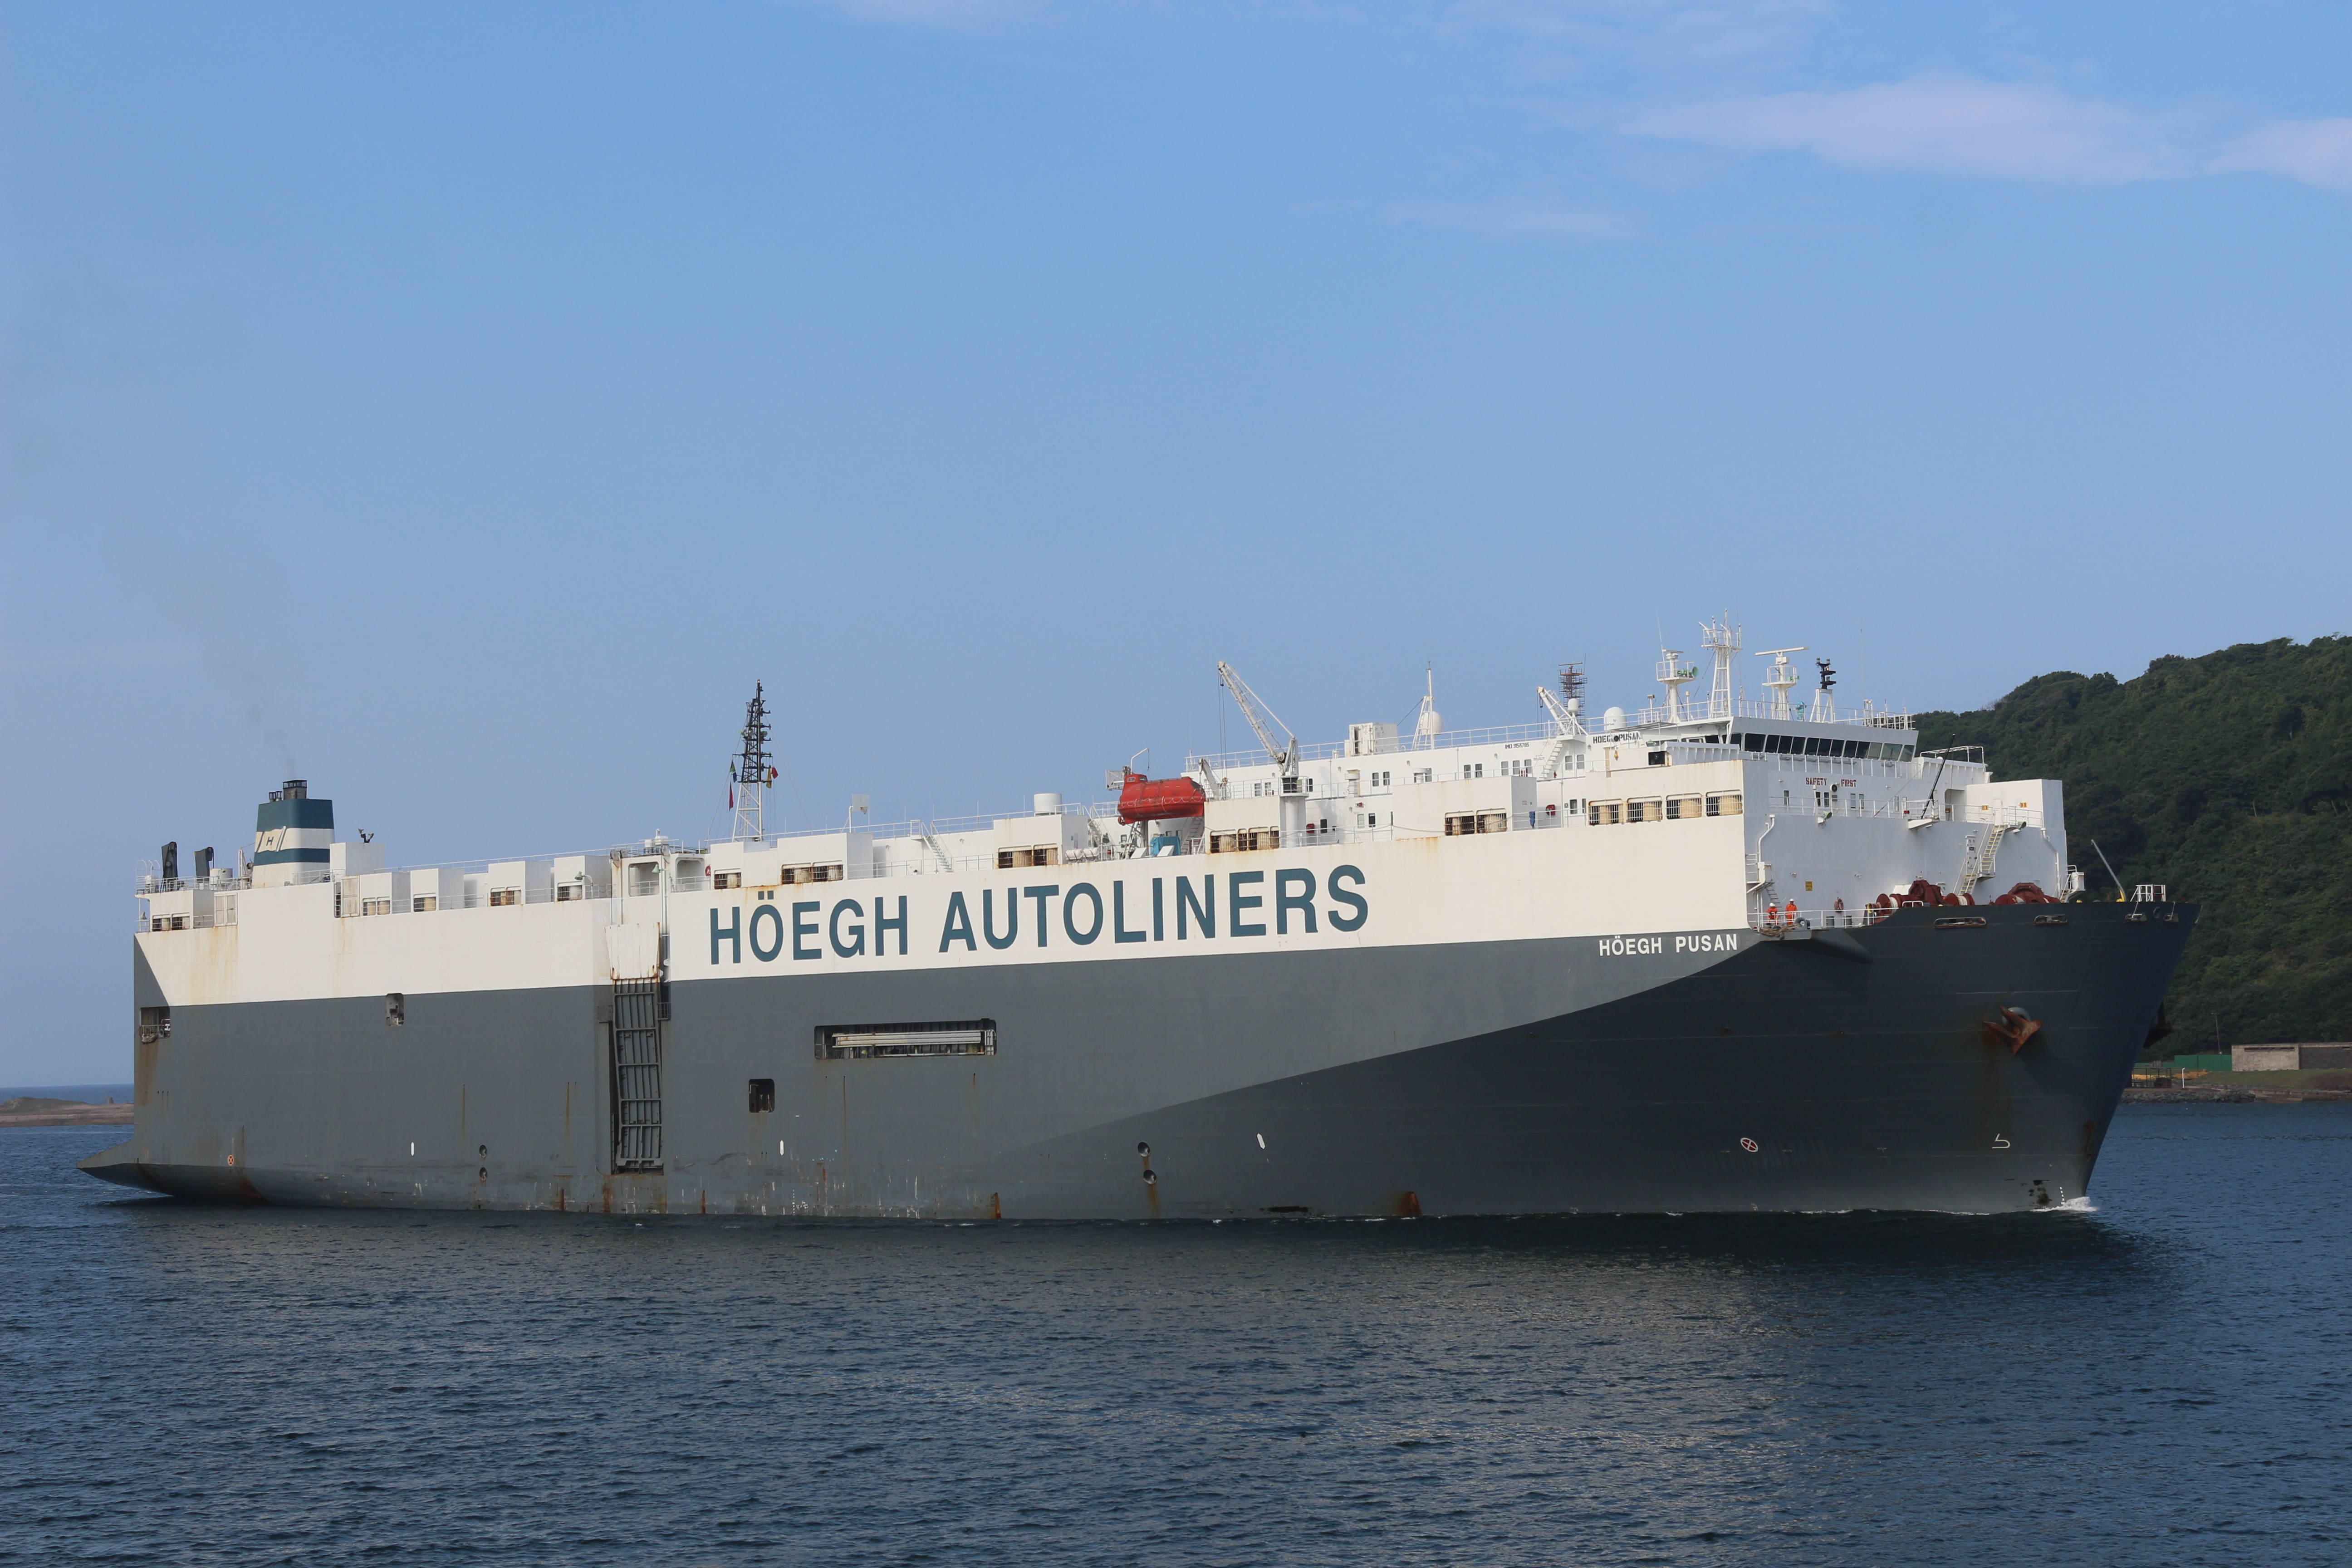 Hoegh Pusan arrives Durban, pic by Keith Betts